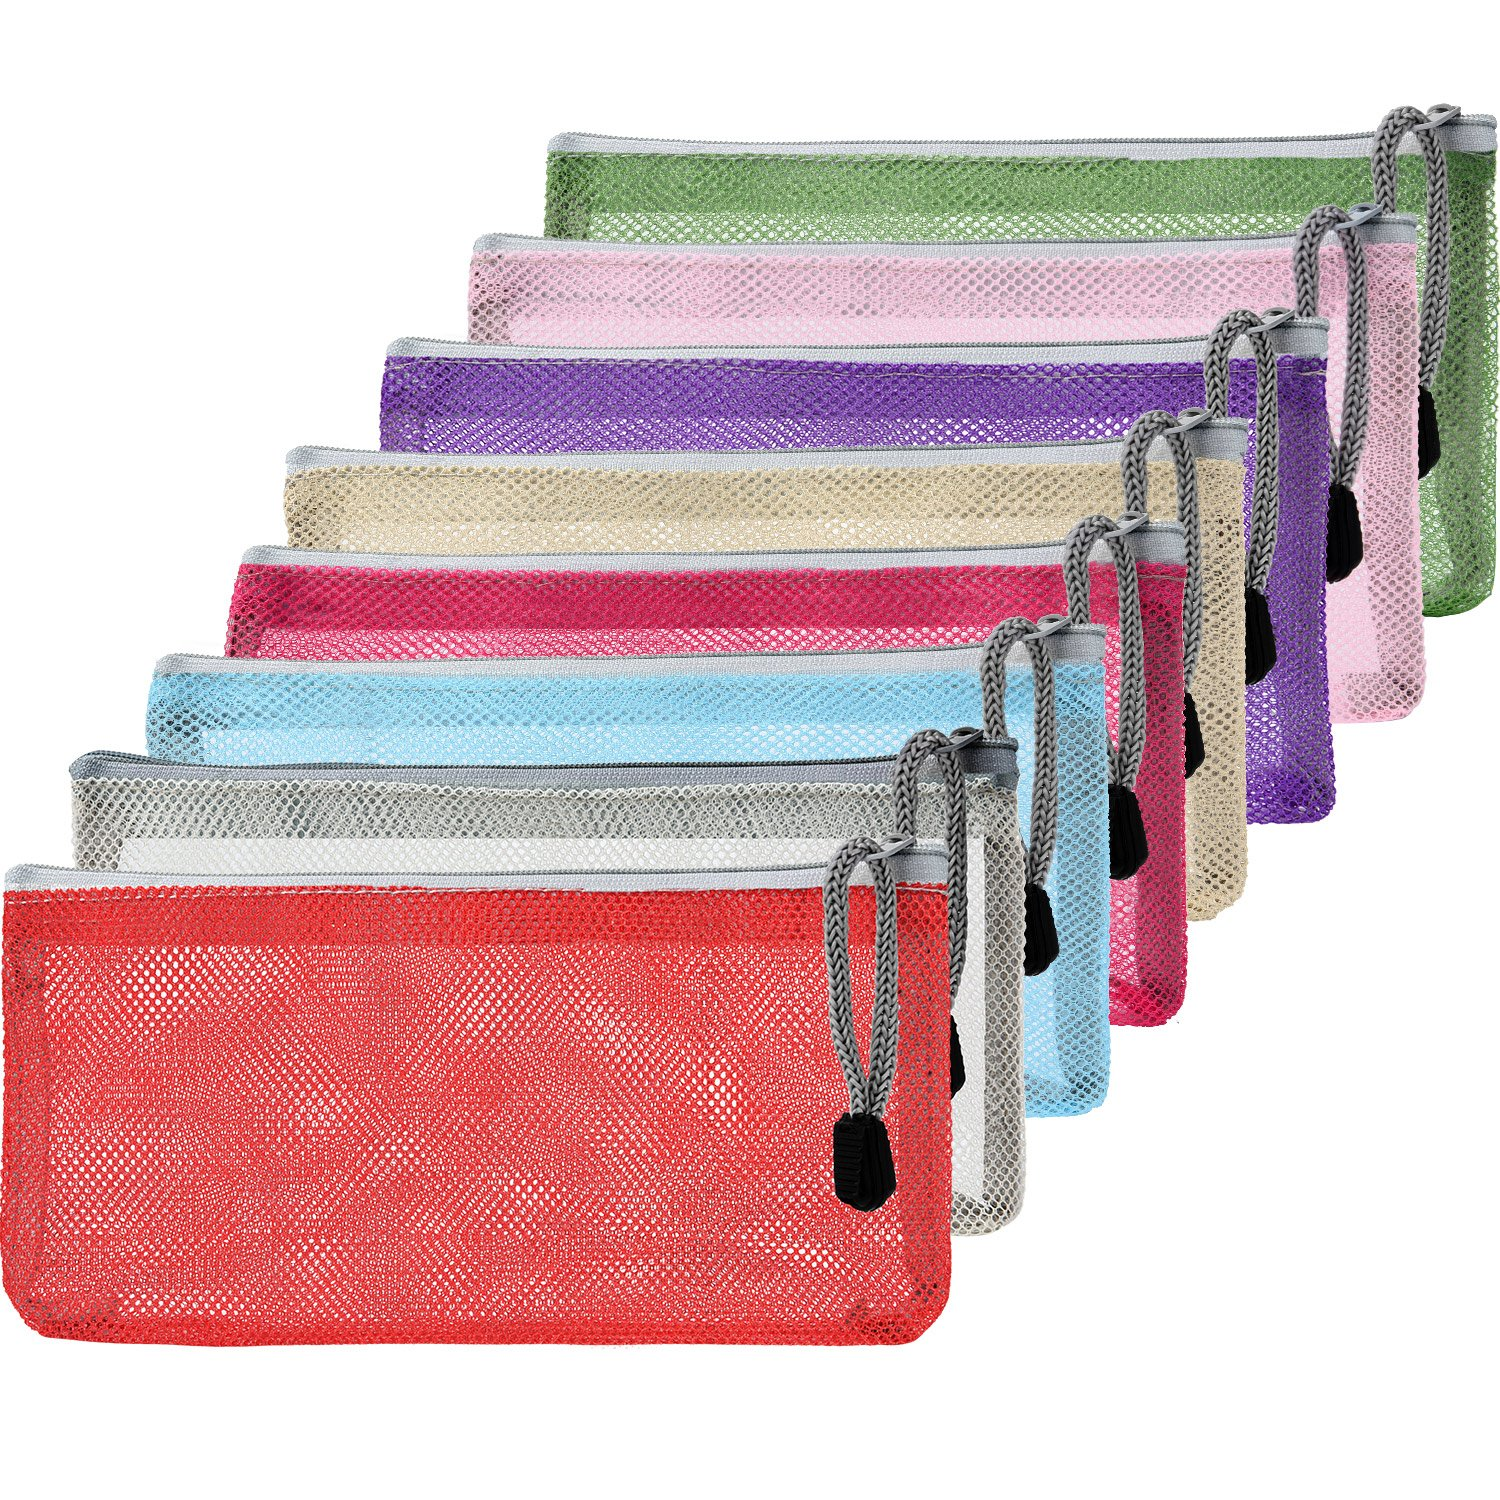 Hestya 8 Pieces Zipper Mesh Carry Bag Mesh Makeup Bag Mesh Compact Travel Pouch Organizer for Toiletry and Cosmetics, 8 Colors